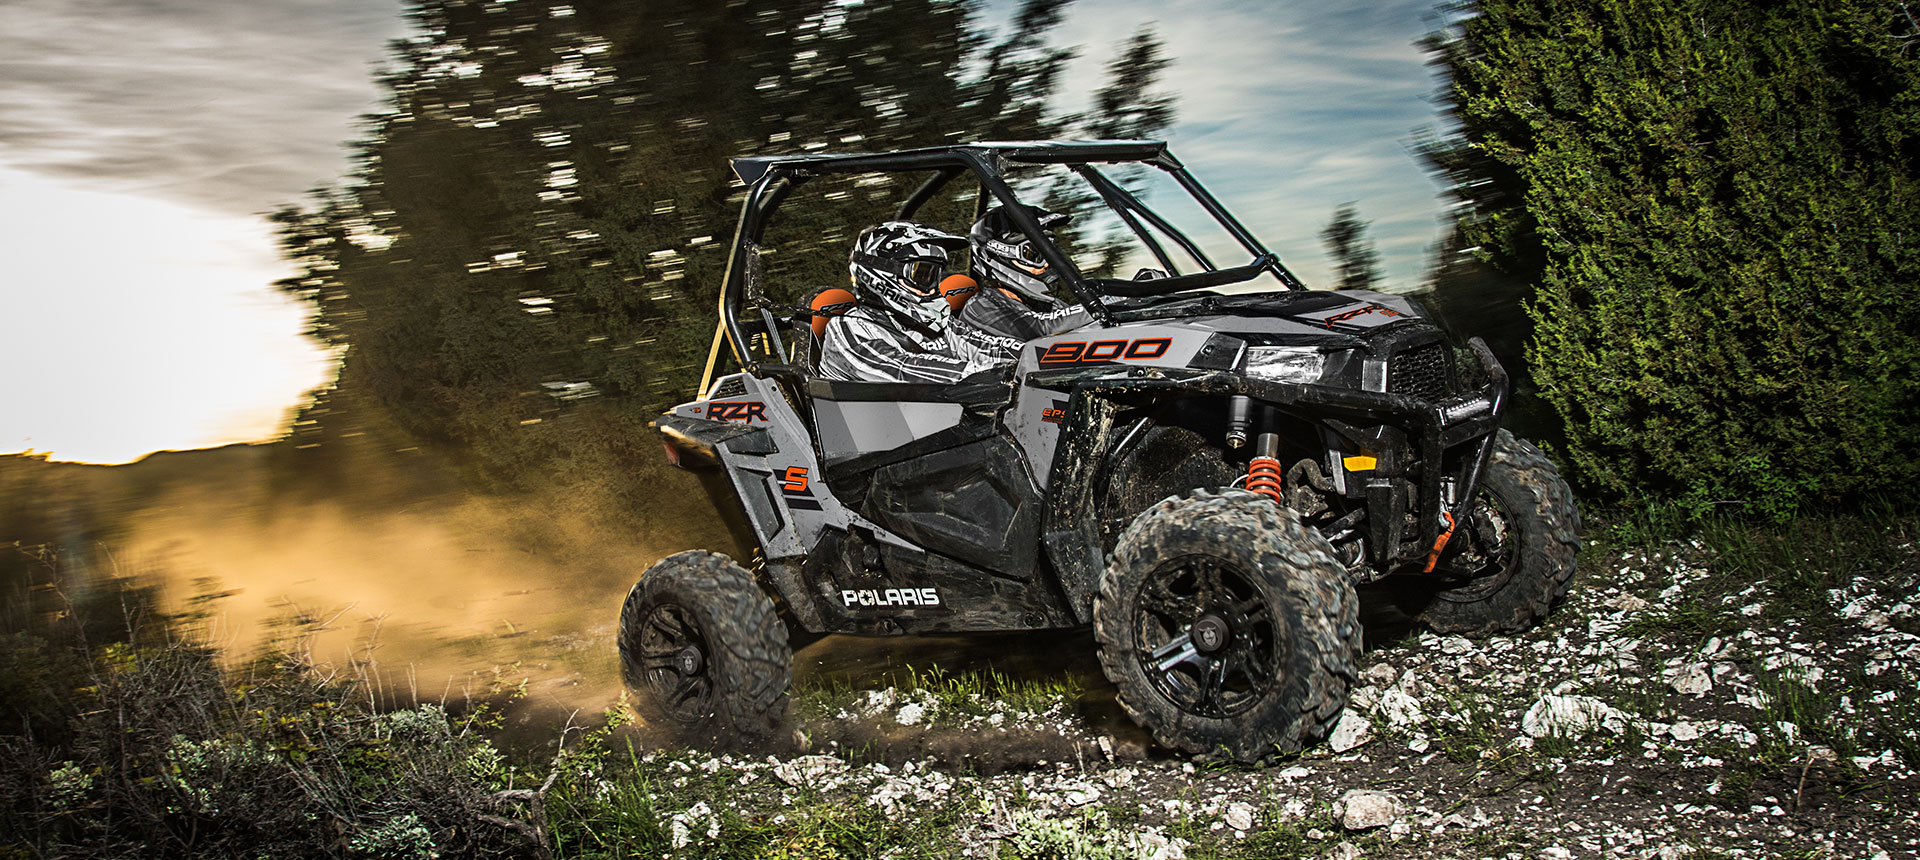 2019 Polaris RZR S 900 in Rapid City, South Dakota - Photo 6